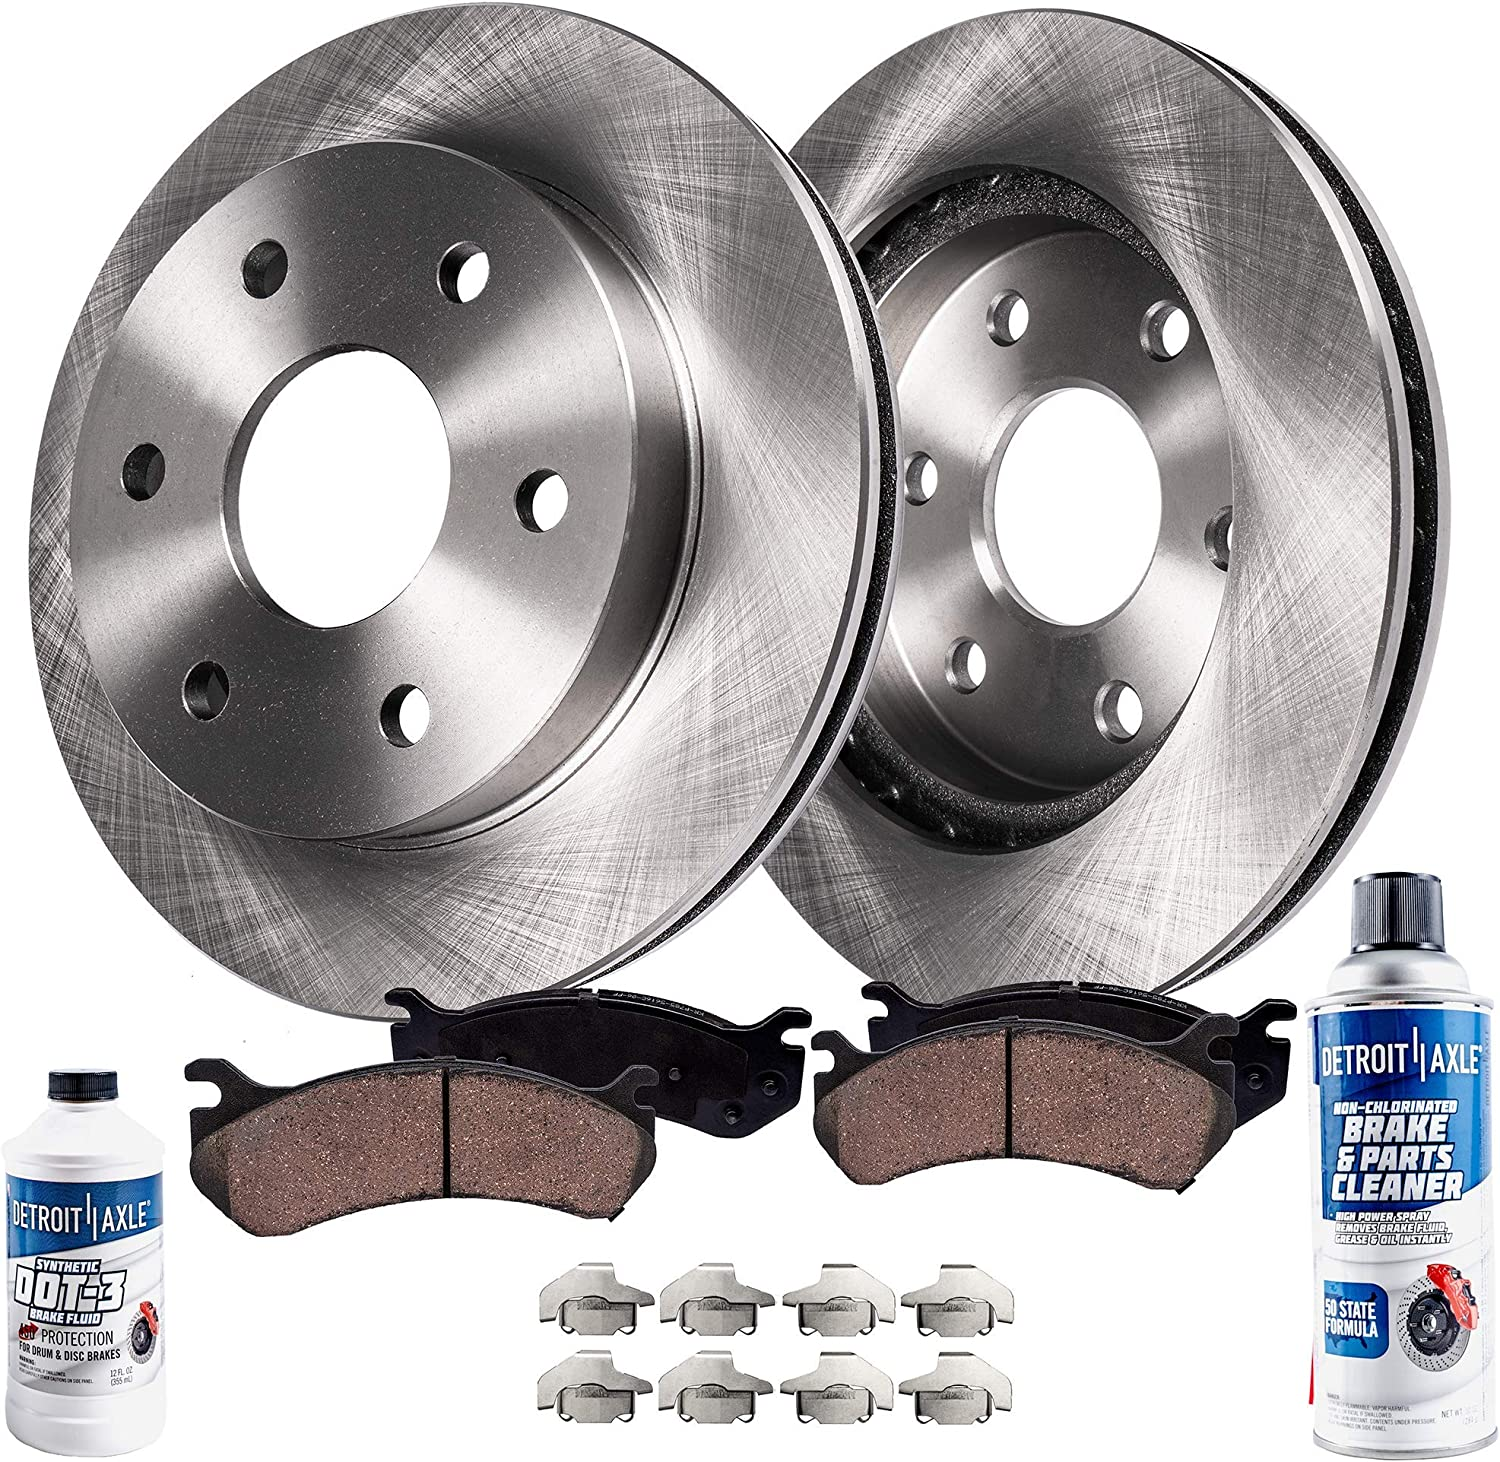 2017 For Ford Expedition Rear Disc Brake Rotors and Ceramic Brake Pads